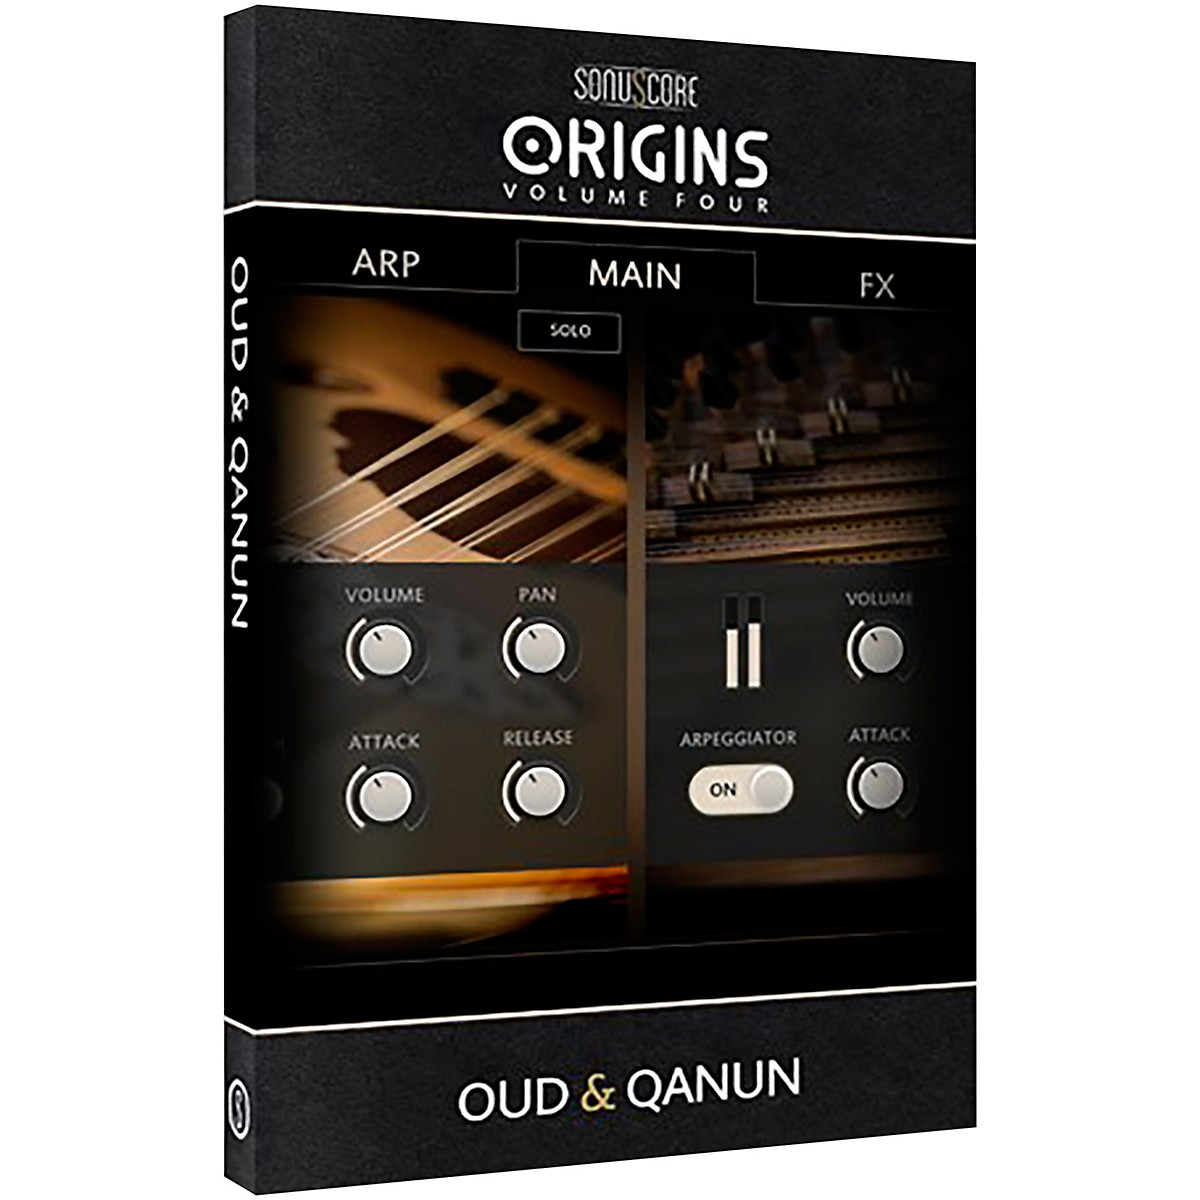 Sonuscore Origins Series Vol. 4 Oud and Quanun